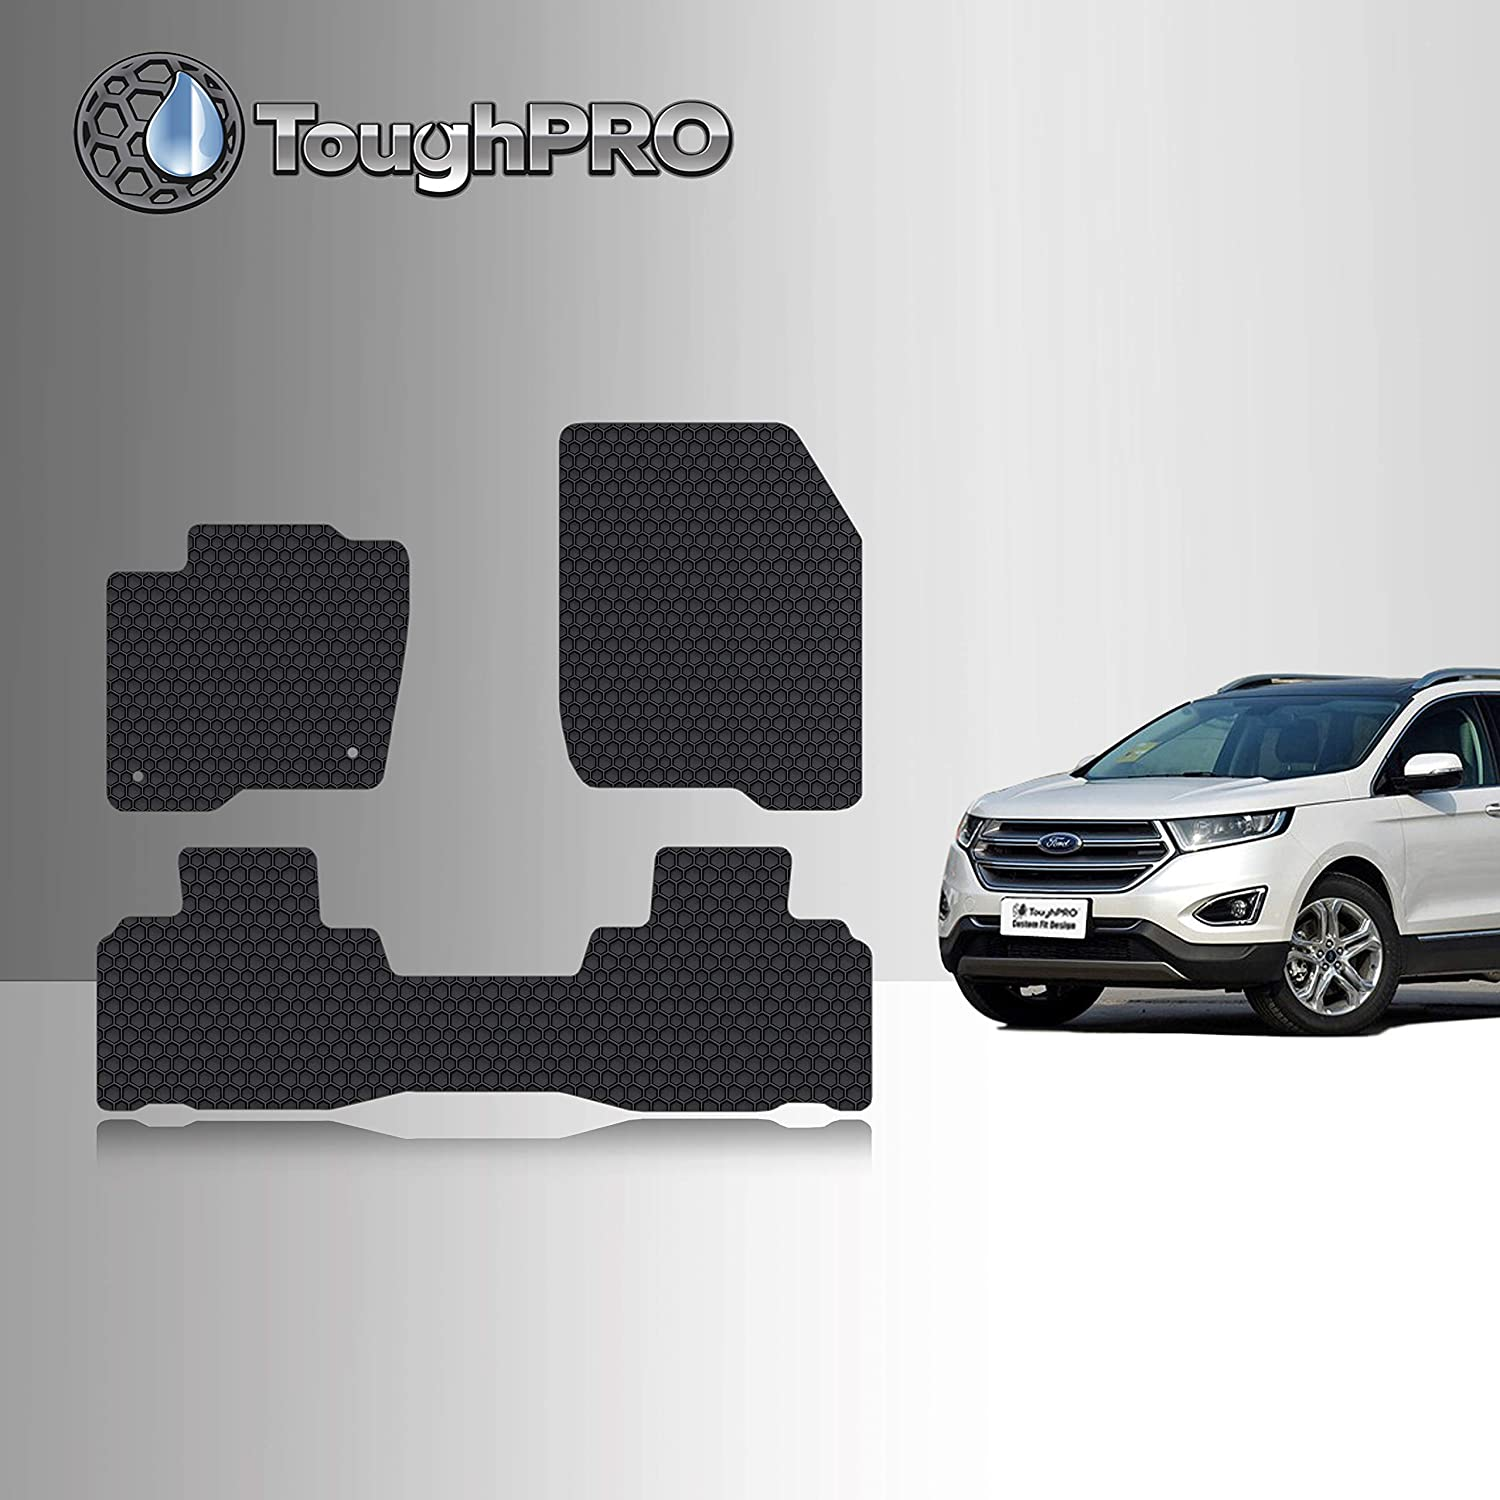 Heavy Duty - All Weather 2020 2019 Compatible with Ford Edge 2016 2018 - Black Rubber TOUGHPRO Floor Mat Accessories Set Made in USA Front Row + 2nd Row 2017 2015